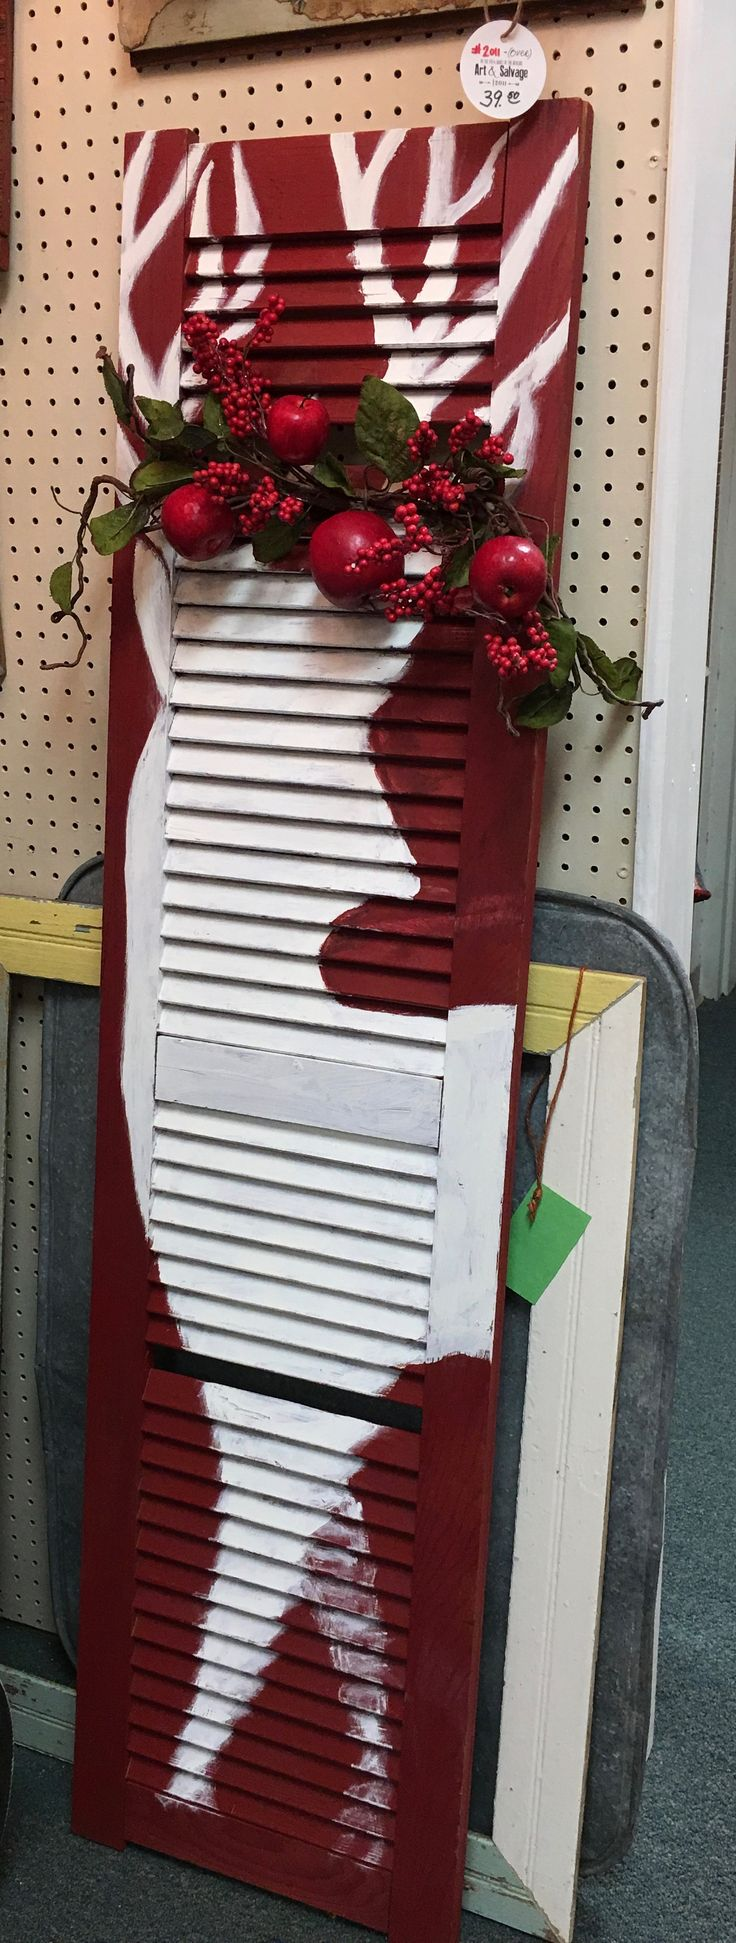 Hand-painted window shutter for Christmas decor at Homestead Handcrafts, San Antonio, Texas.